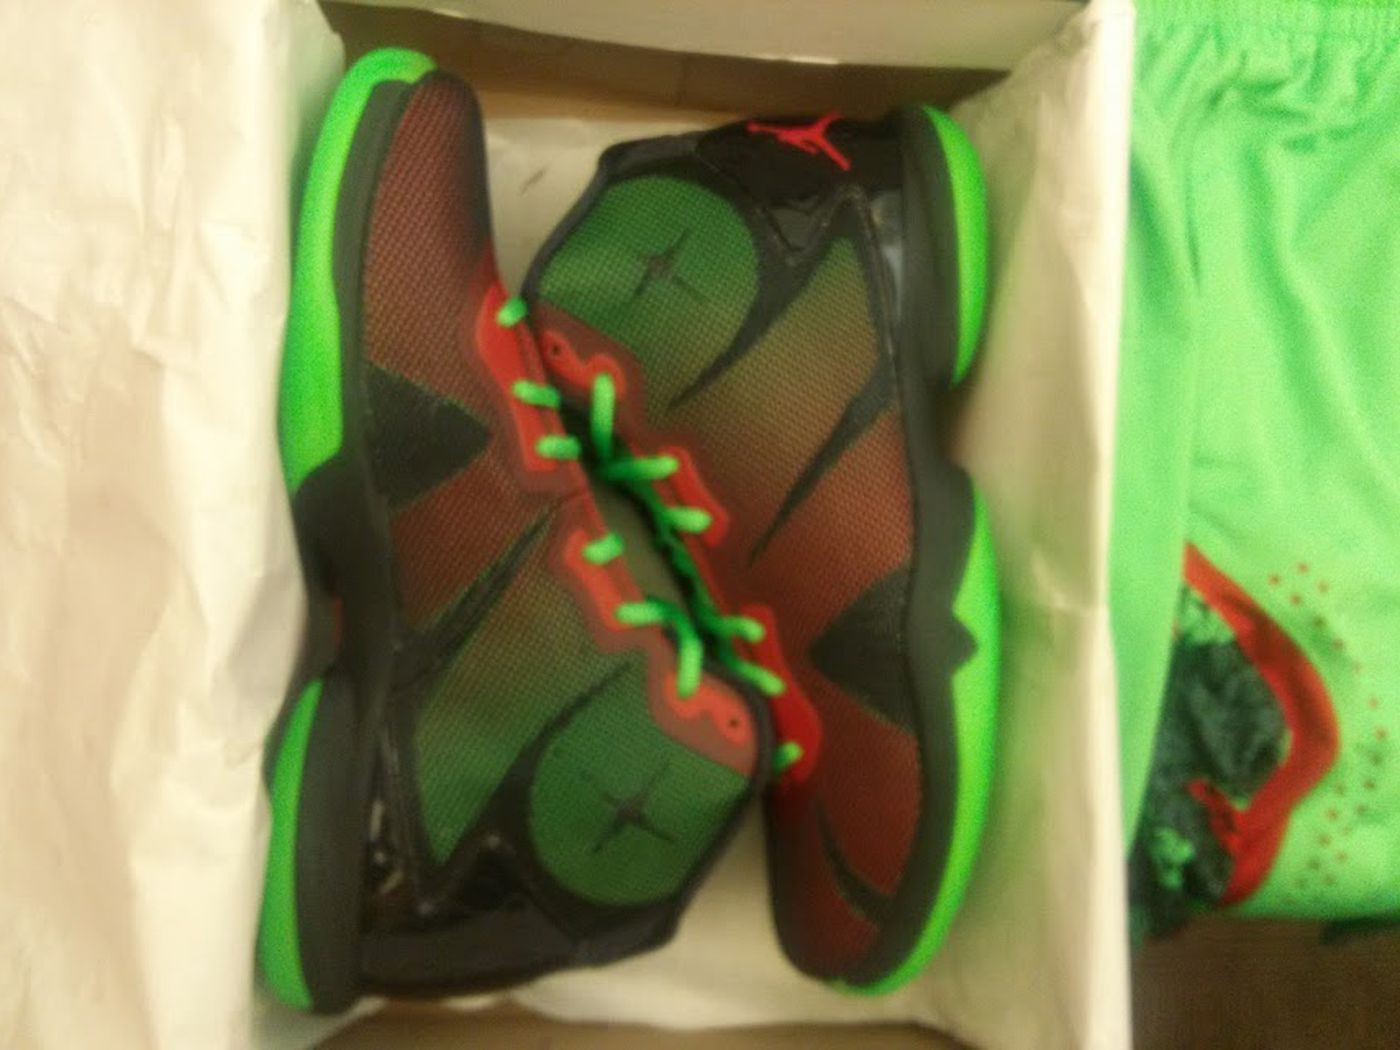 cf2d8550aae Blake Griffin, Superfly 4s and Marvin the Martian - Clips Nation